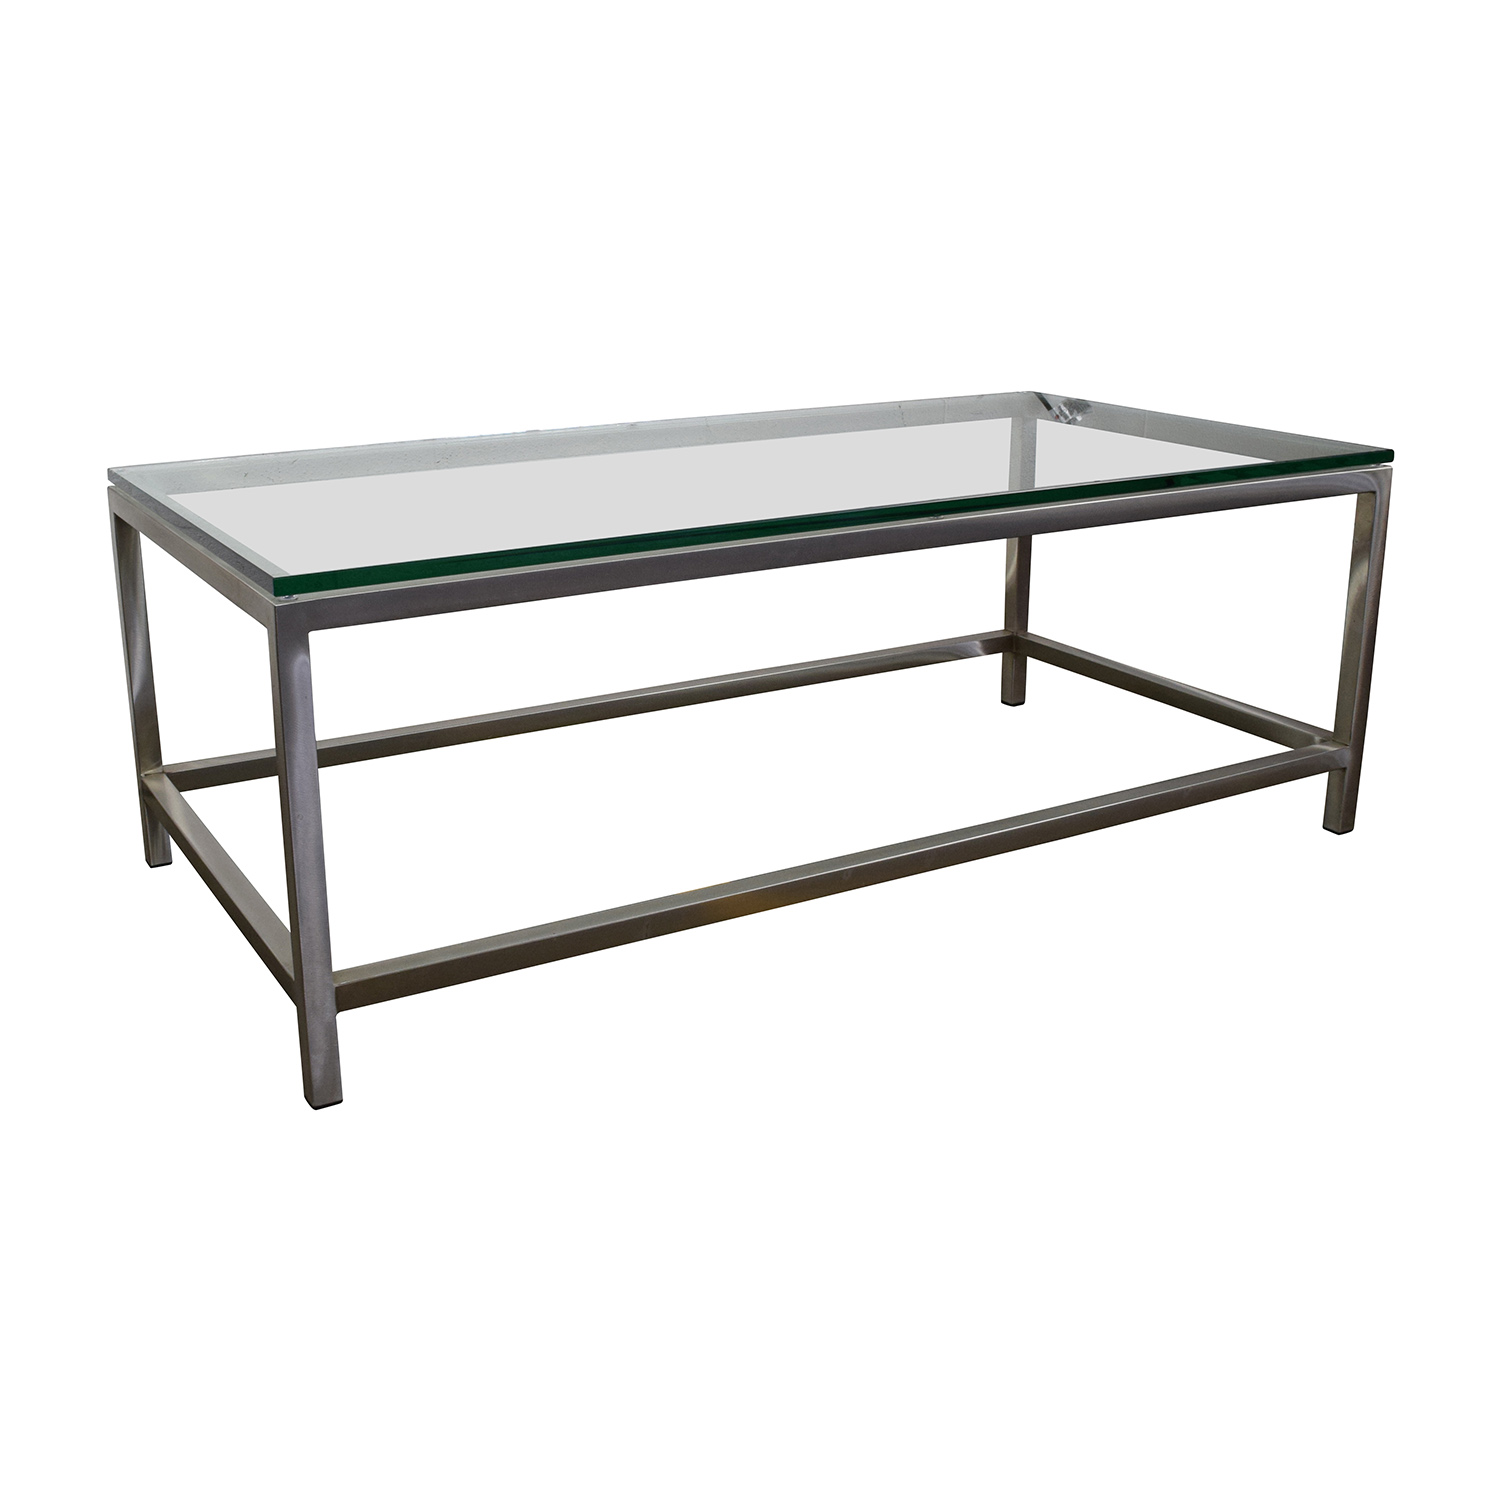 Crate And Barrel Black Marble Coffee Table: Crate And Barrel Crate & Barrel Era Rectangular